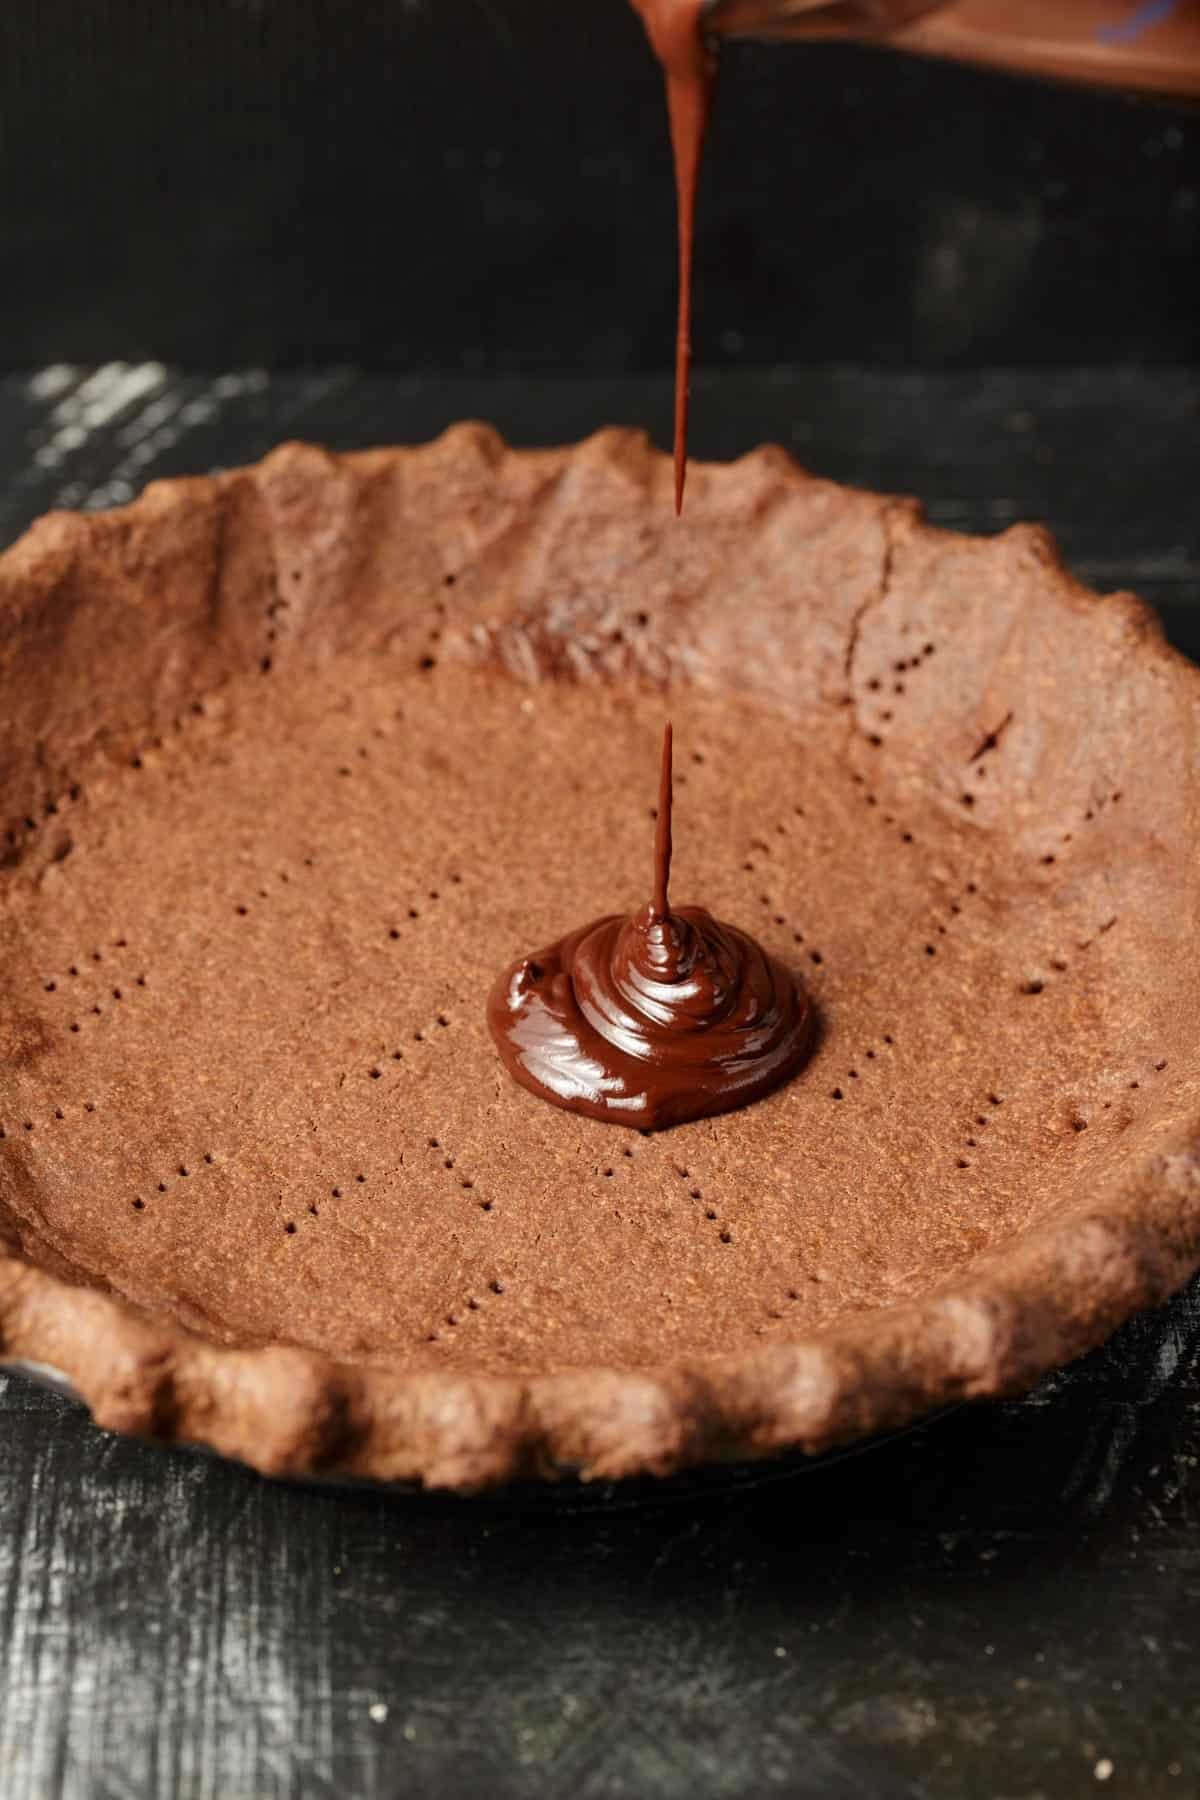 Chocolate ganache being poured into a chocolate pie crust.